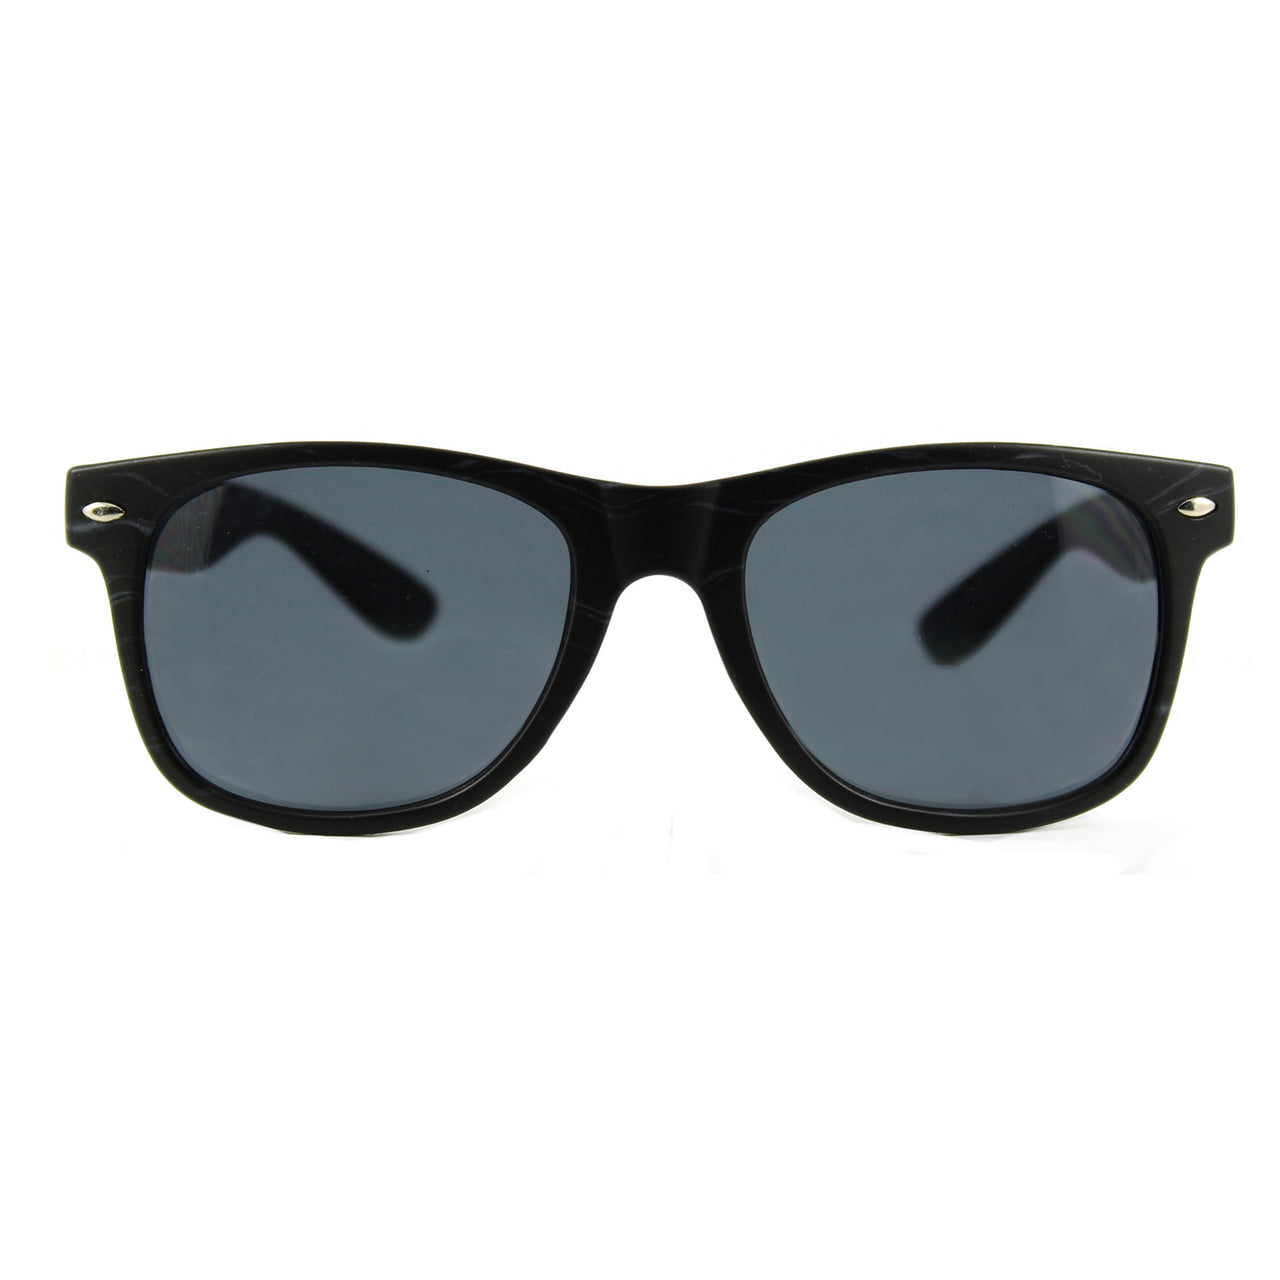 Bondi - Sunglasses Black